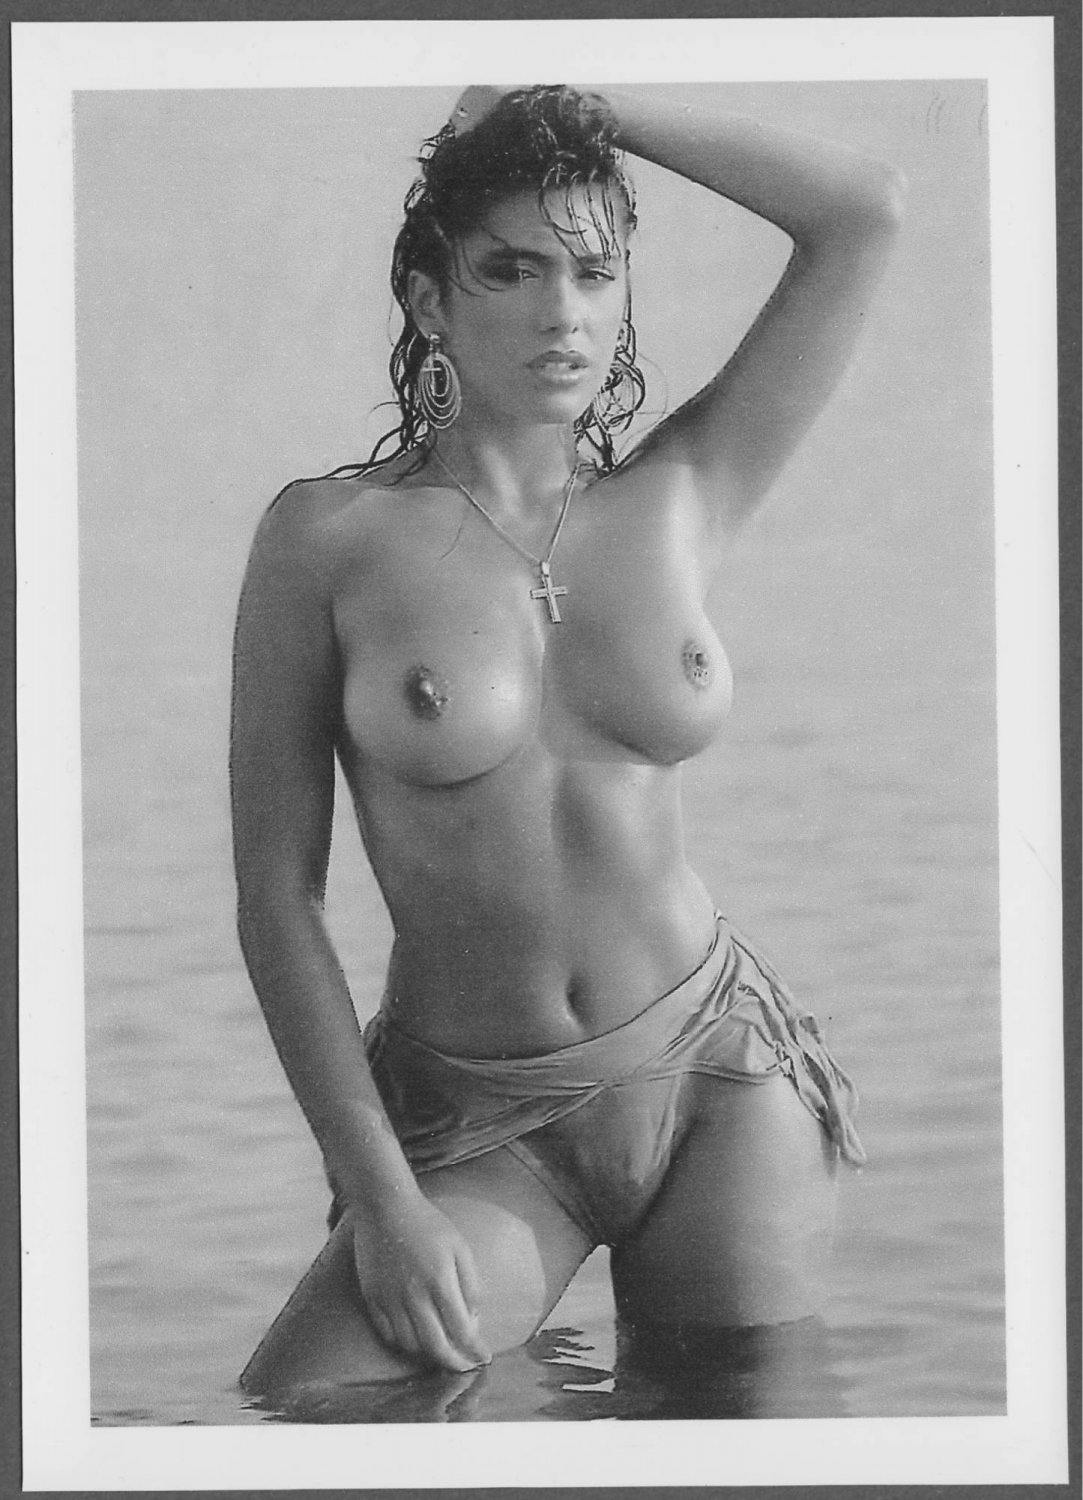 SABRINA SALERNO TOPLESS NUDE BREASTS NEW REPRINT PHOTO 5X7 #1